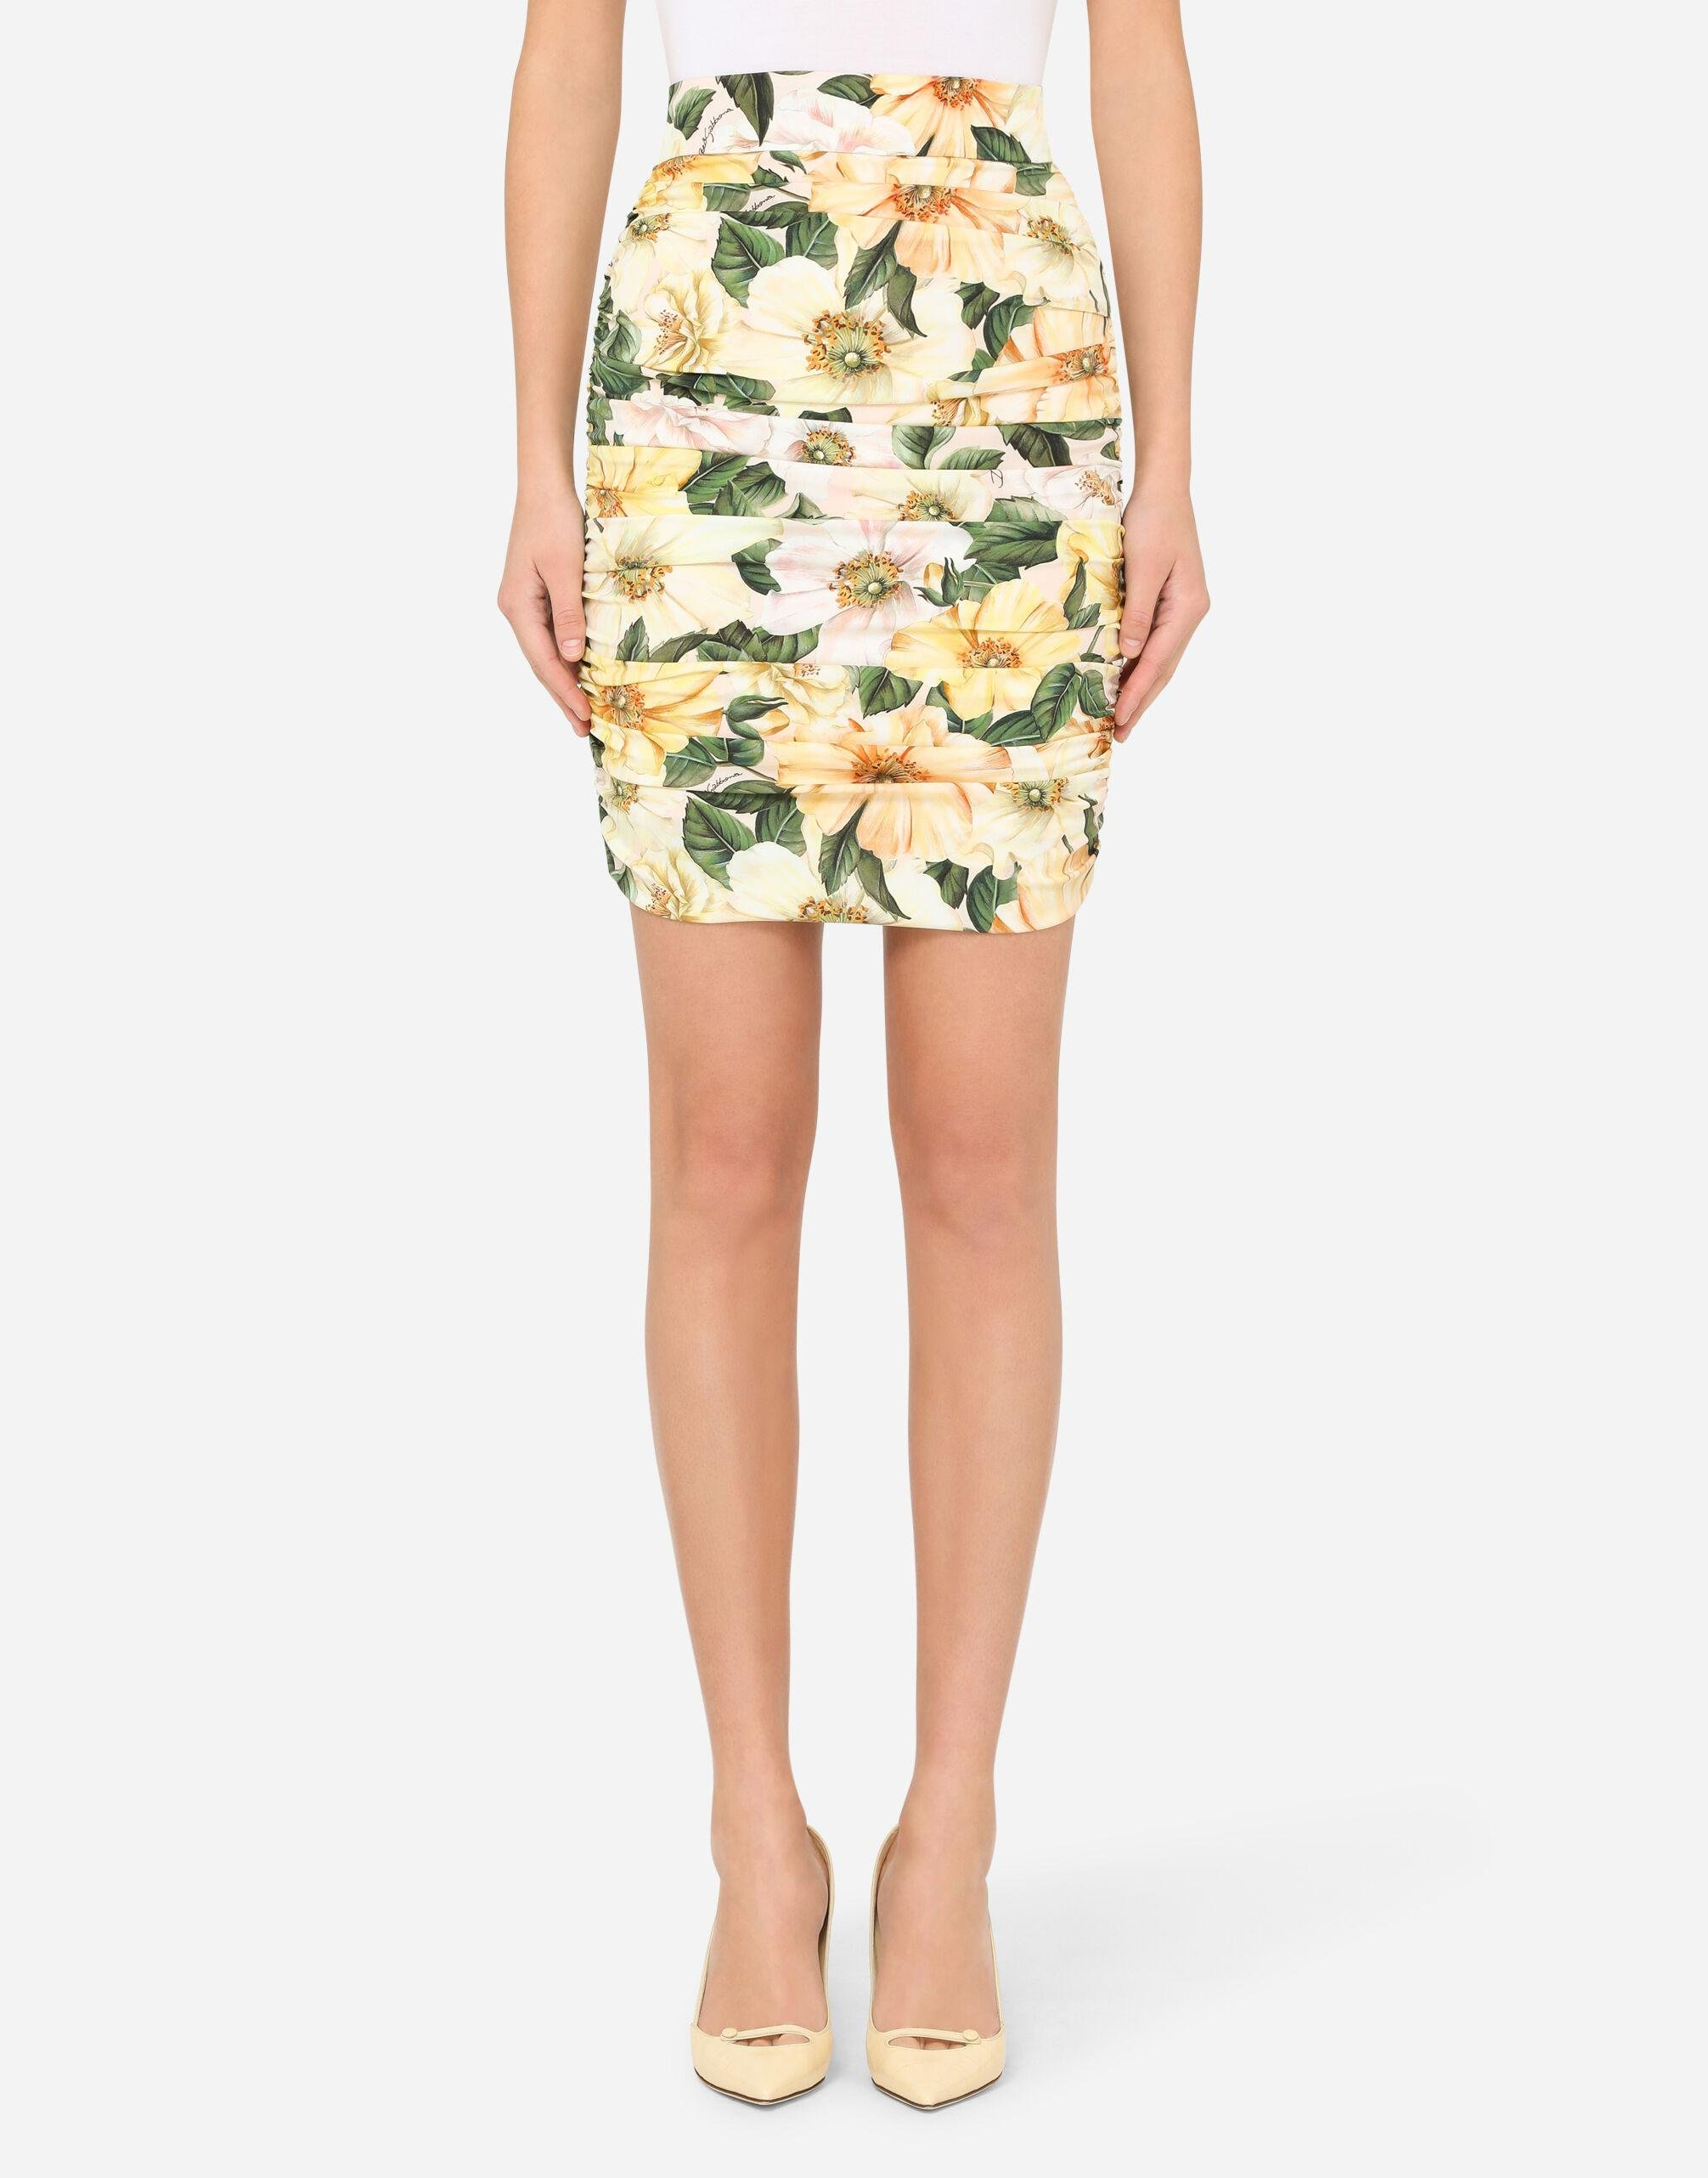 Short camellia-print charmeuse skirt with draping